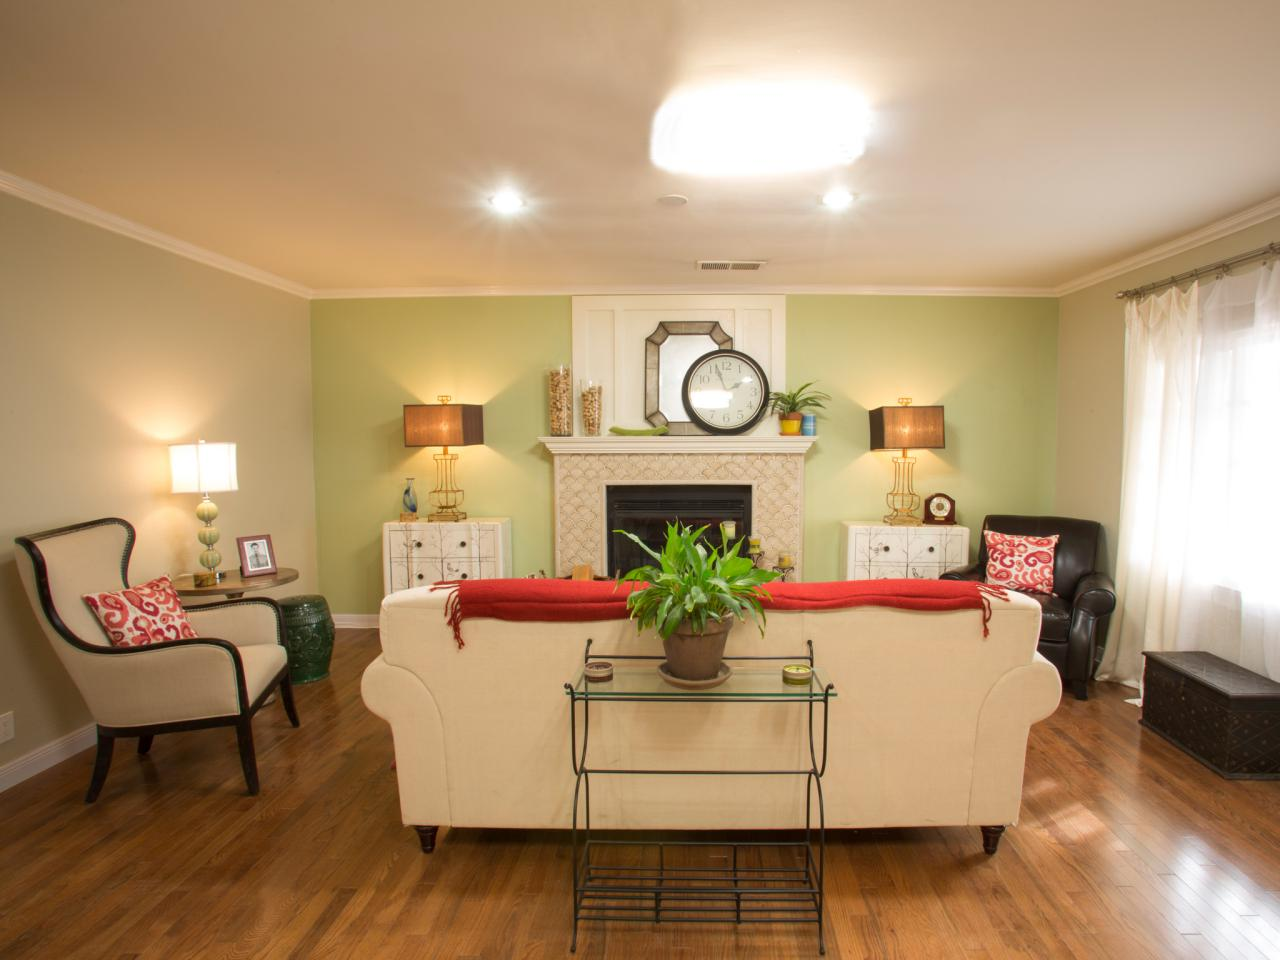 Decorating Your Space Using Accent Walls | Crown Paints Blog